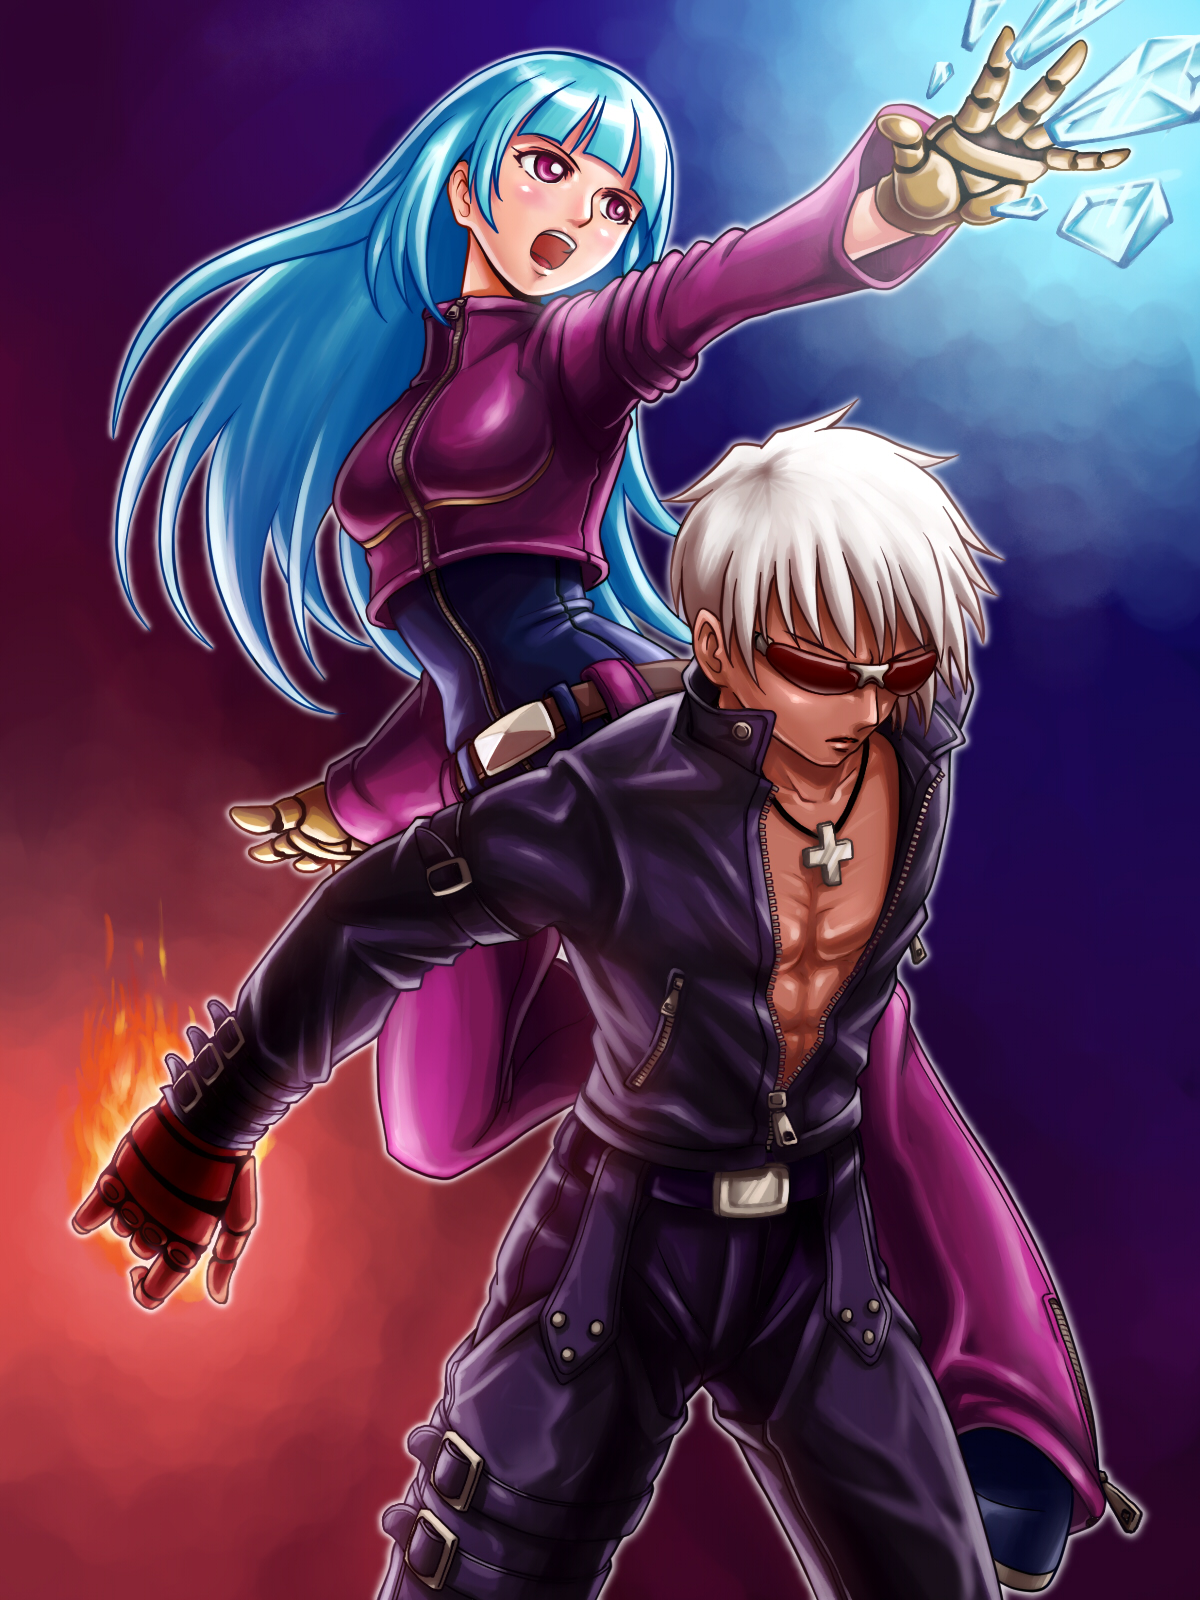 Yugioh Iphone Wallpaper King Of Fighters Image 1204875 Zerochan Anime Image Board